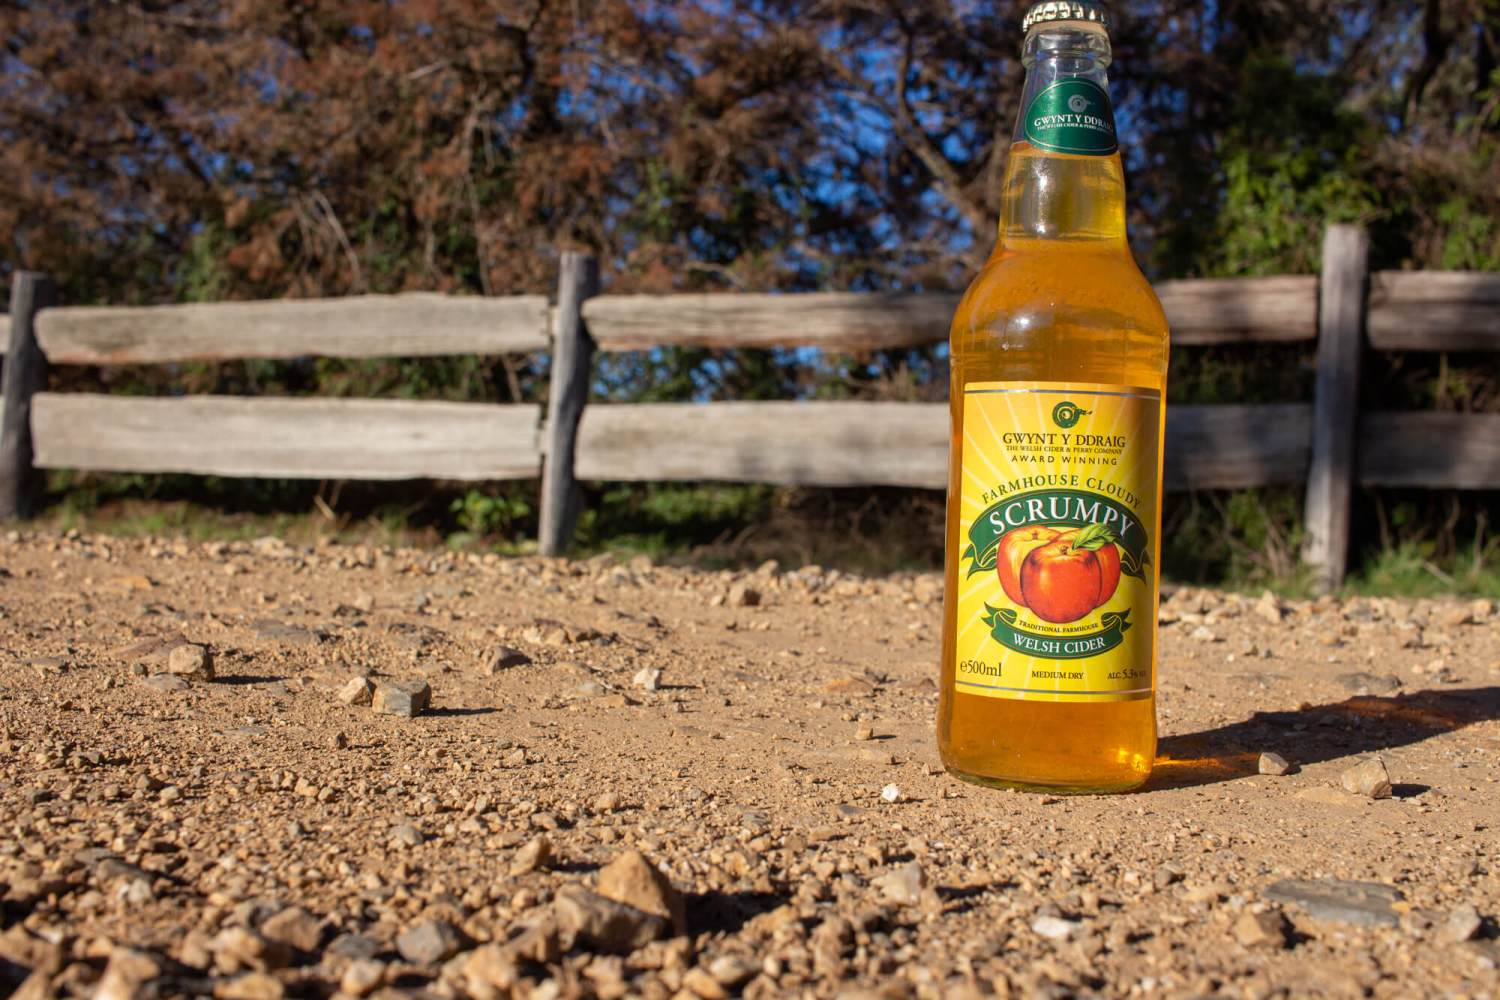 Bottle of Gwynt Y Ddraig Farmhouse Cloudy Scrumpy on a dusty road